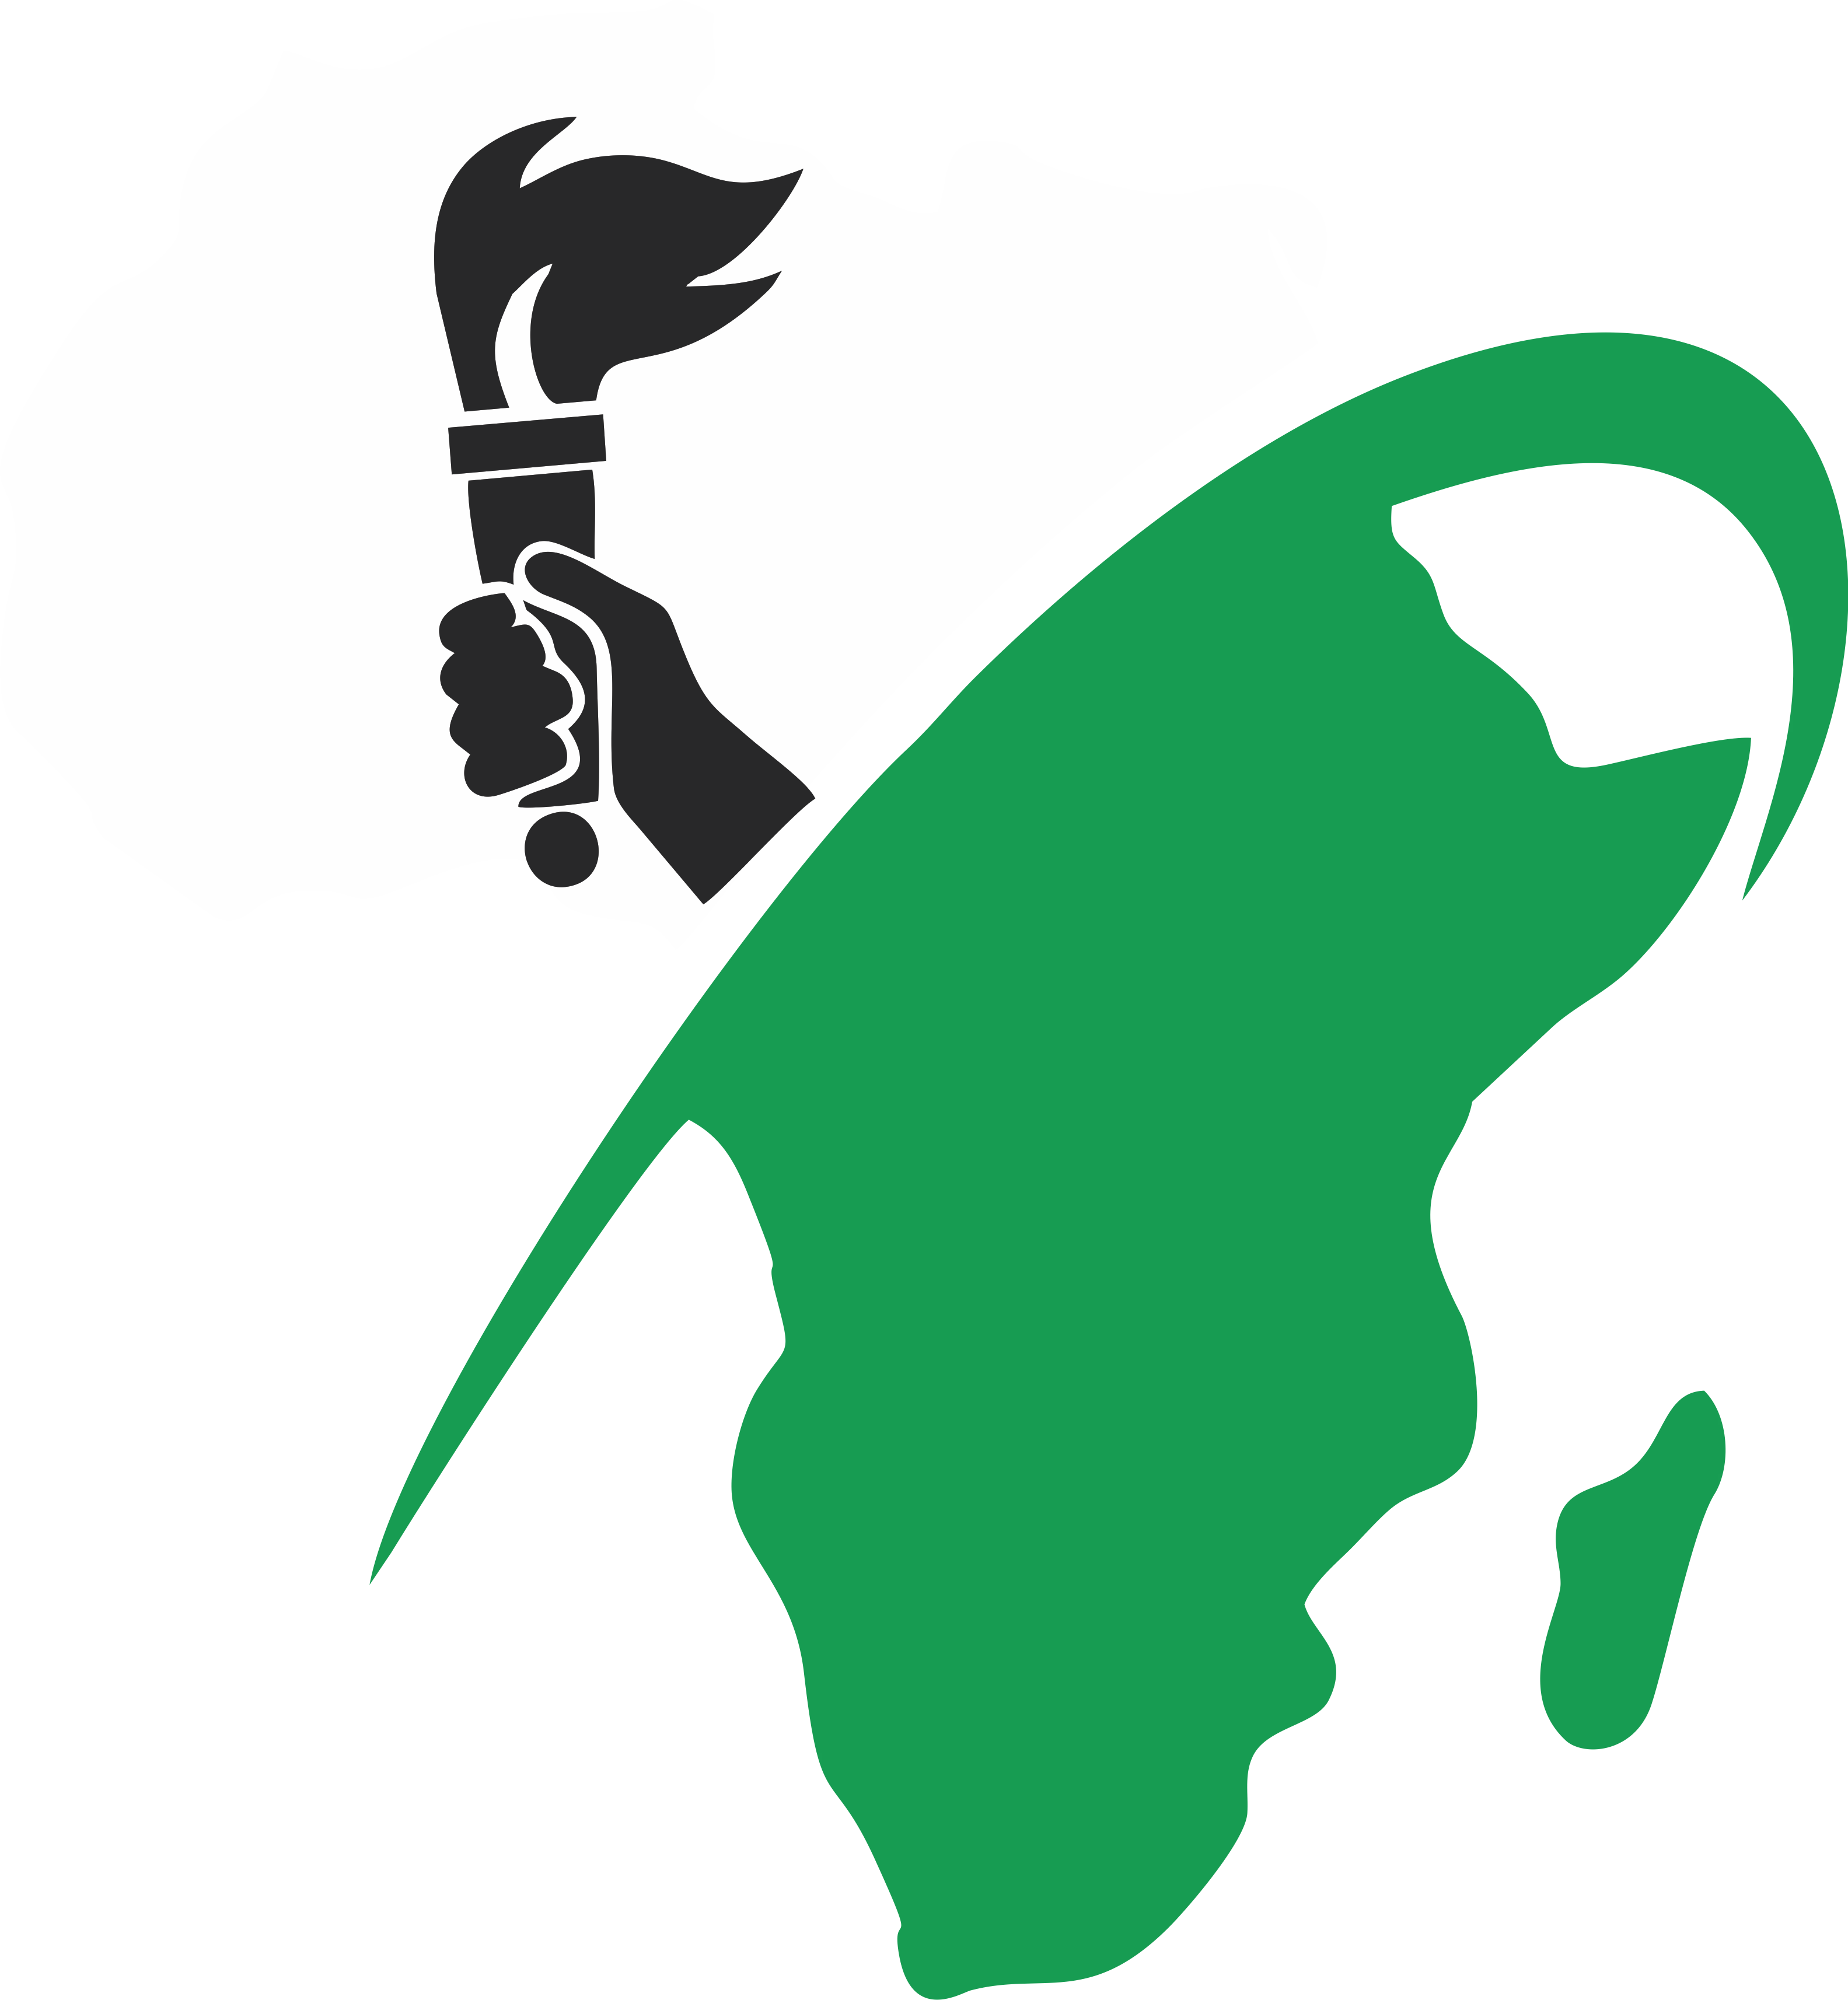 African dream foundation . Dreaming clipart aspire